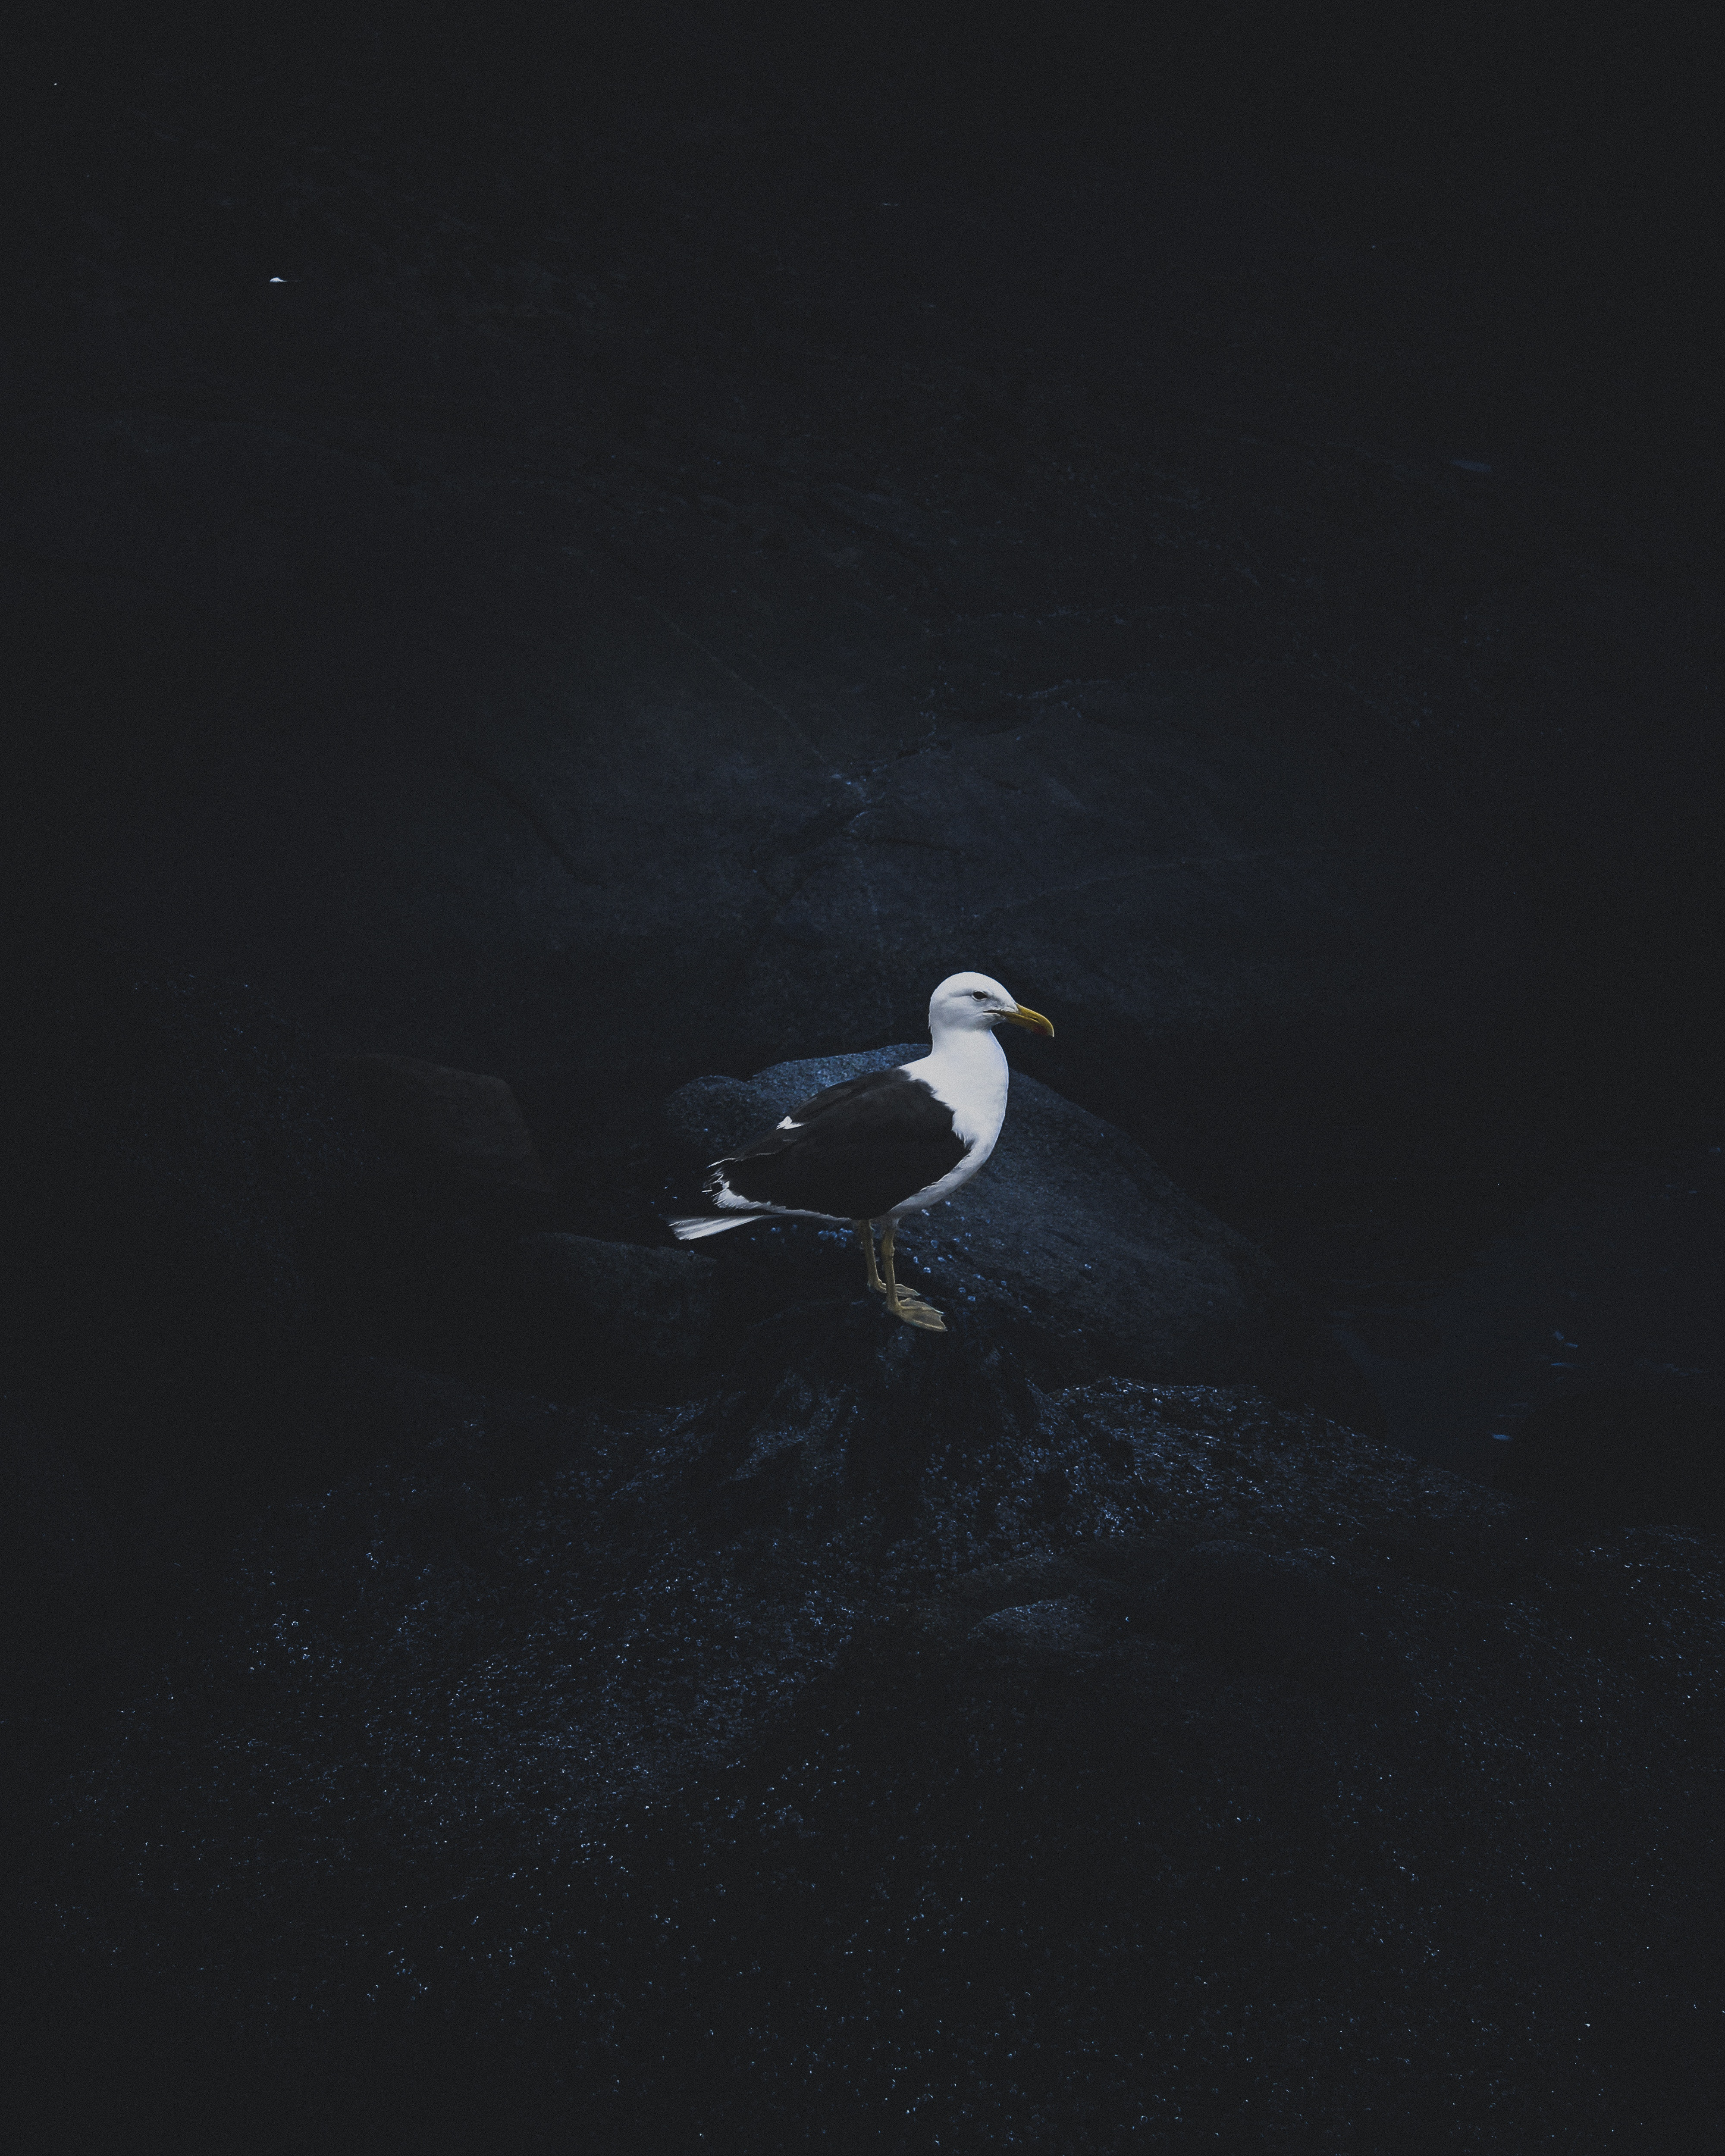 106028 download wallpaper Animals, Bird, Dark Background, Gull, Seagull screensavers and pictures for free